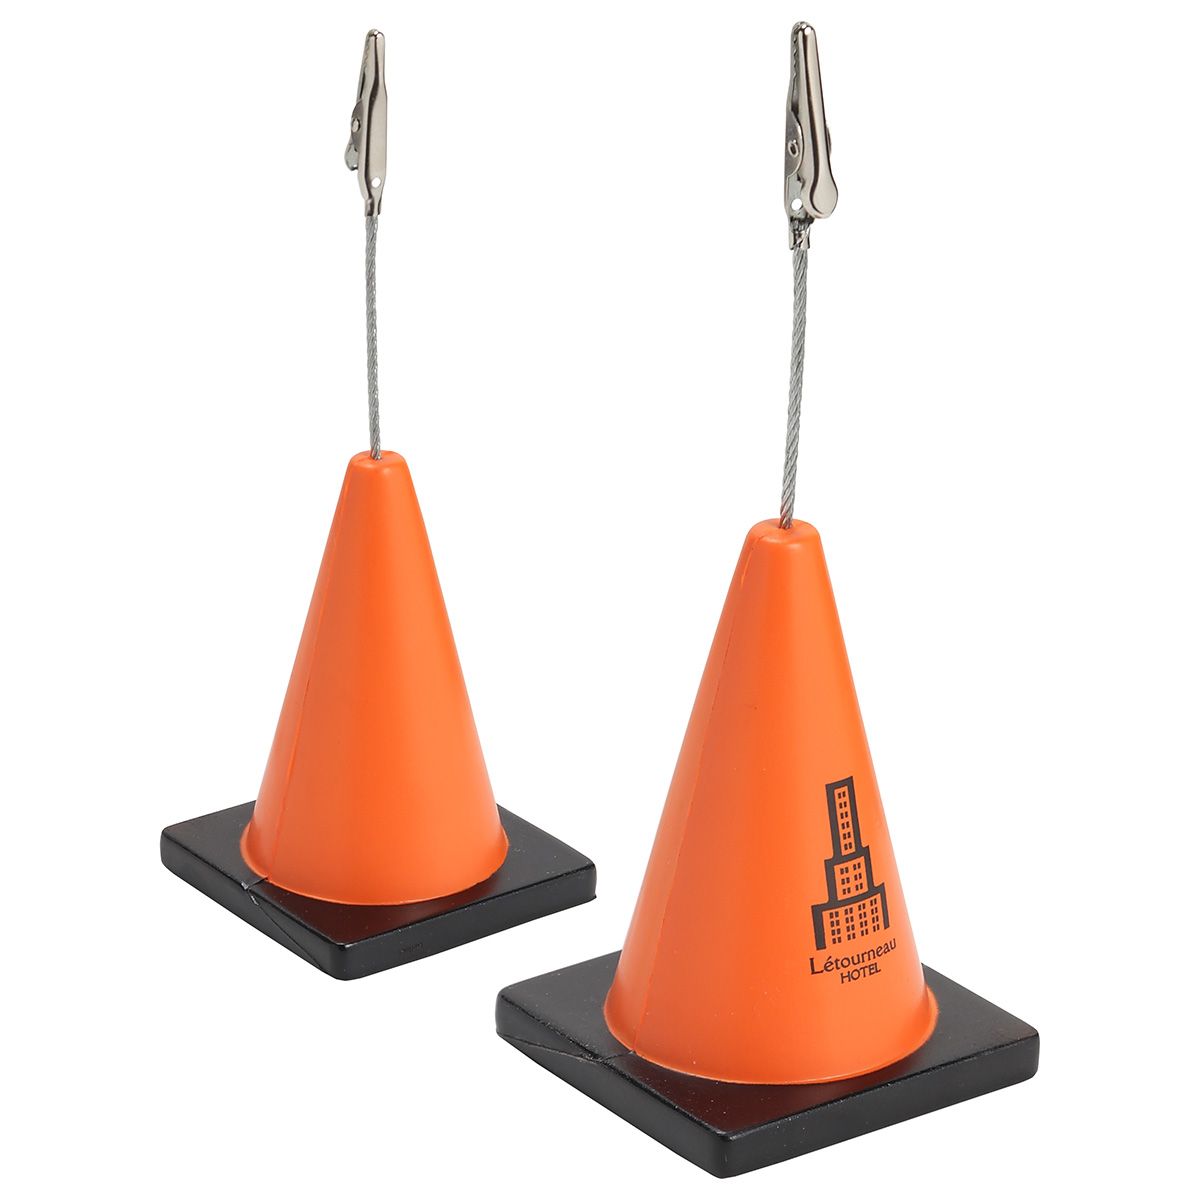 Construction Cone Stress Reliever Memo Holder, LMH-CC04 - 1 Colour Imprint